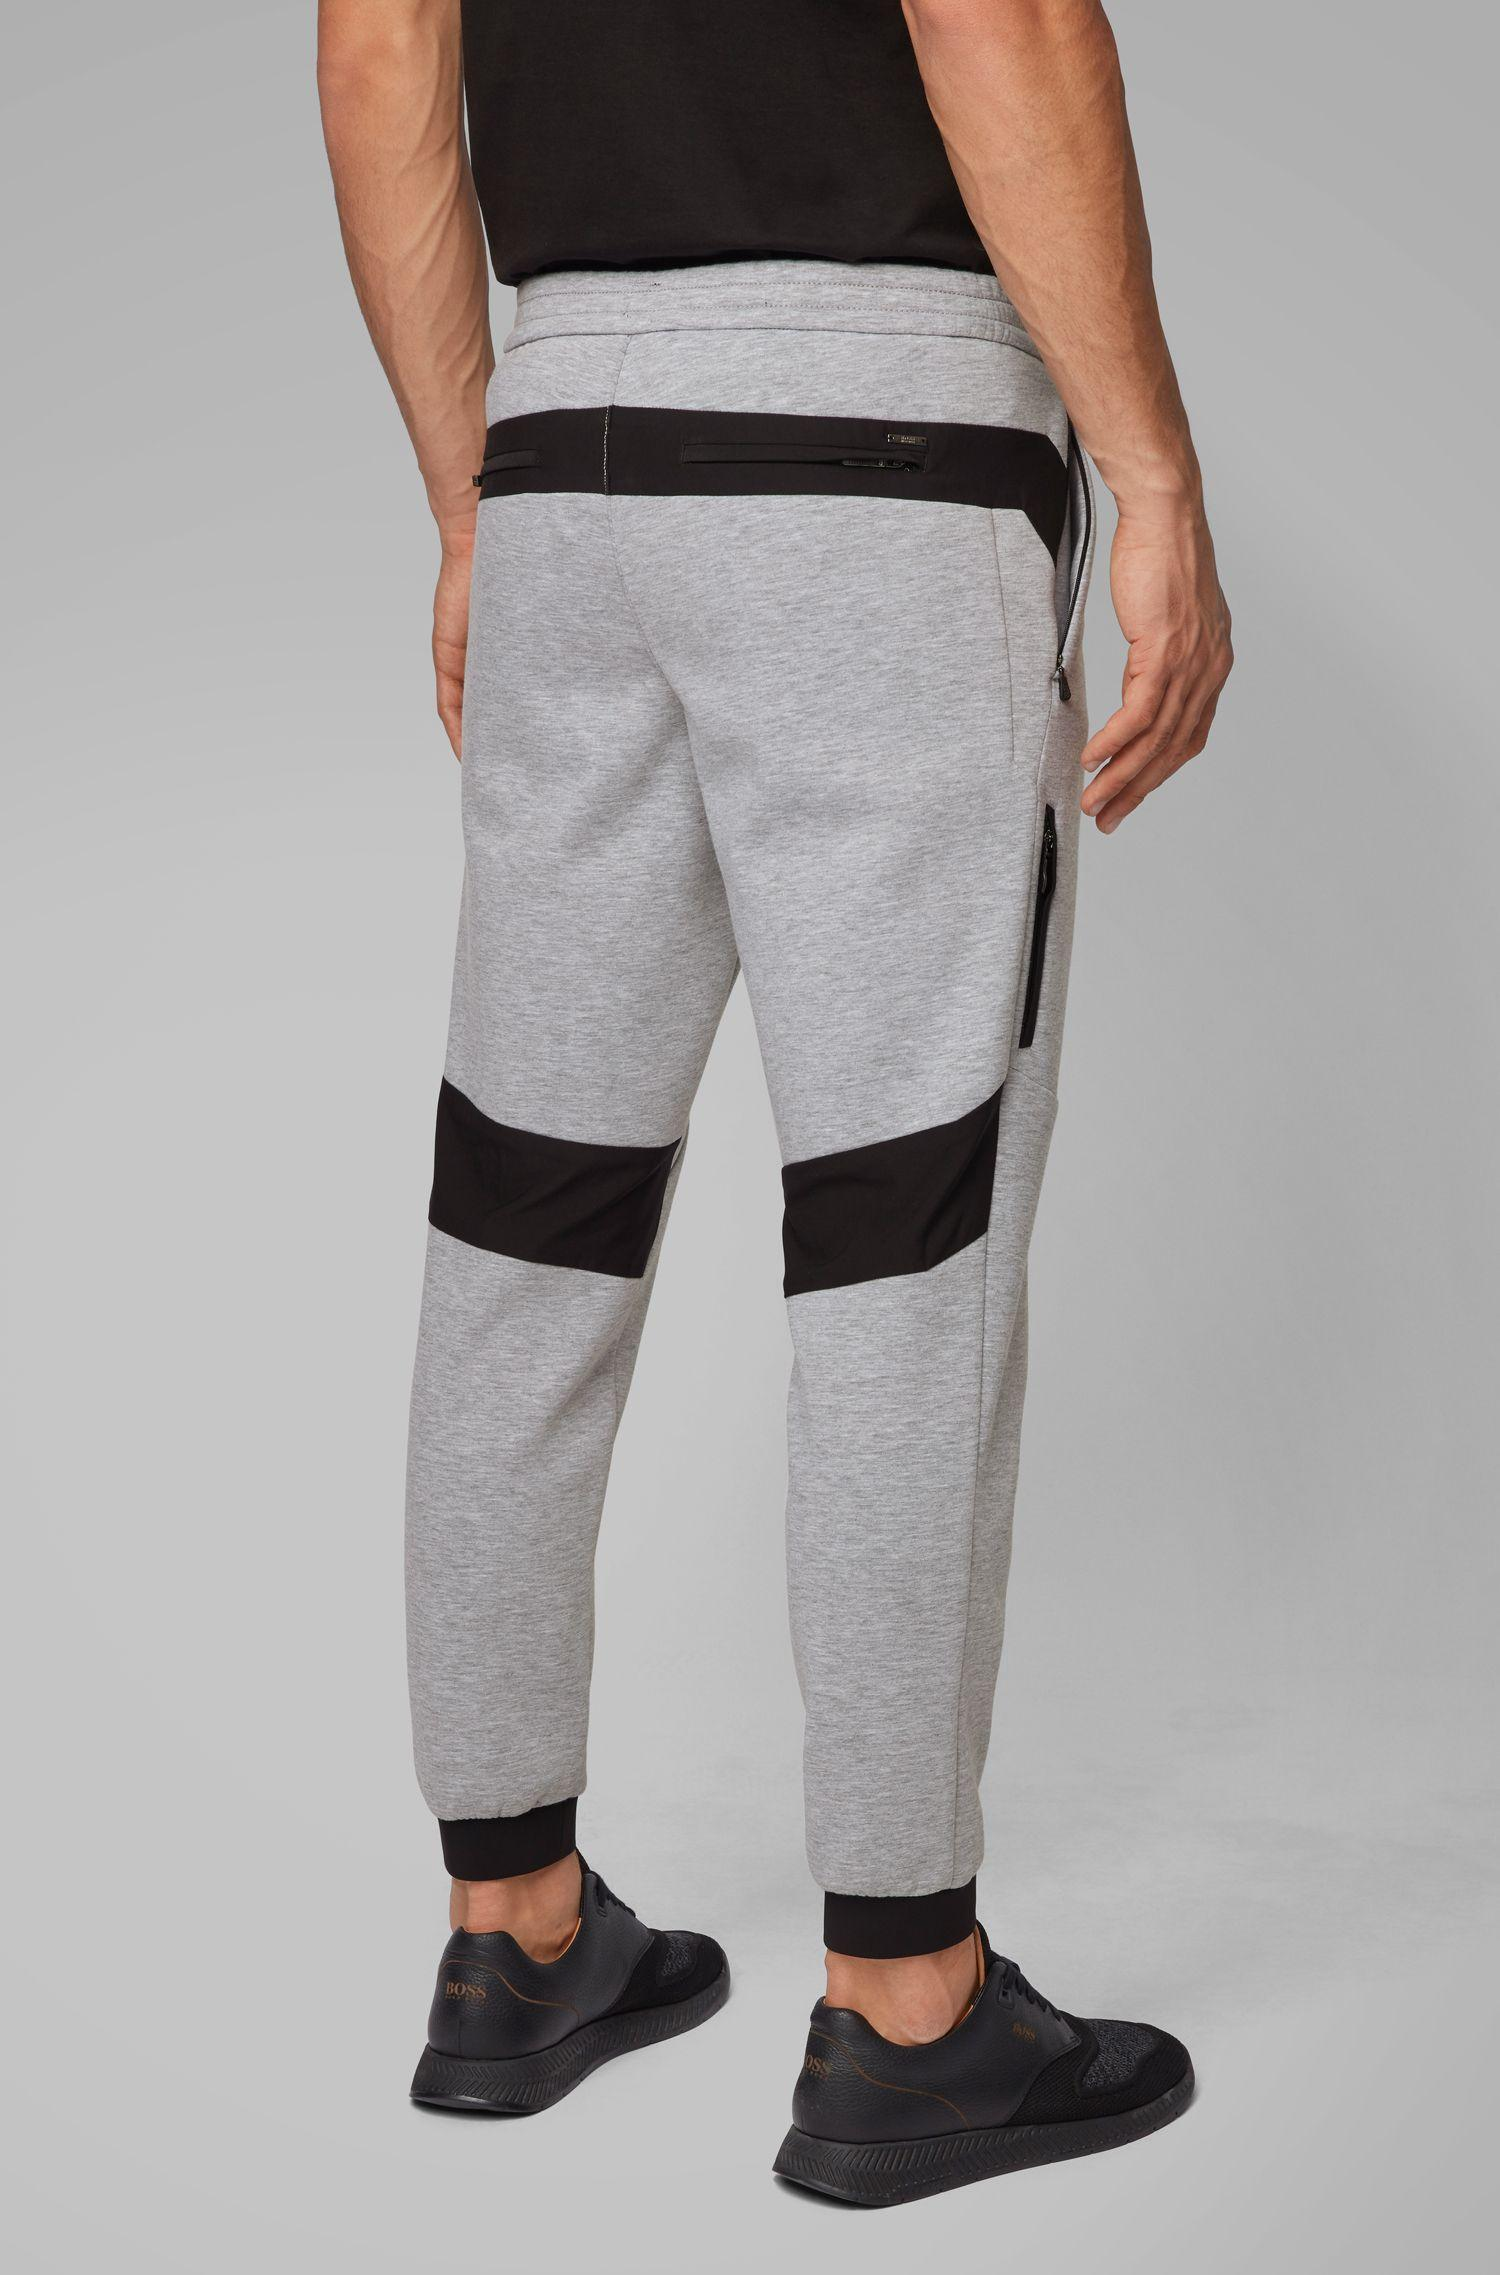 ac29aaa9c3 BOSS - Gray Tapered-fit jogging Bottoms In Italian Jersey for Men - Lyst.  View fullscreen